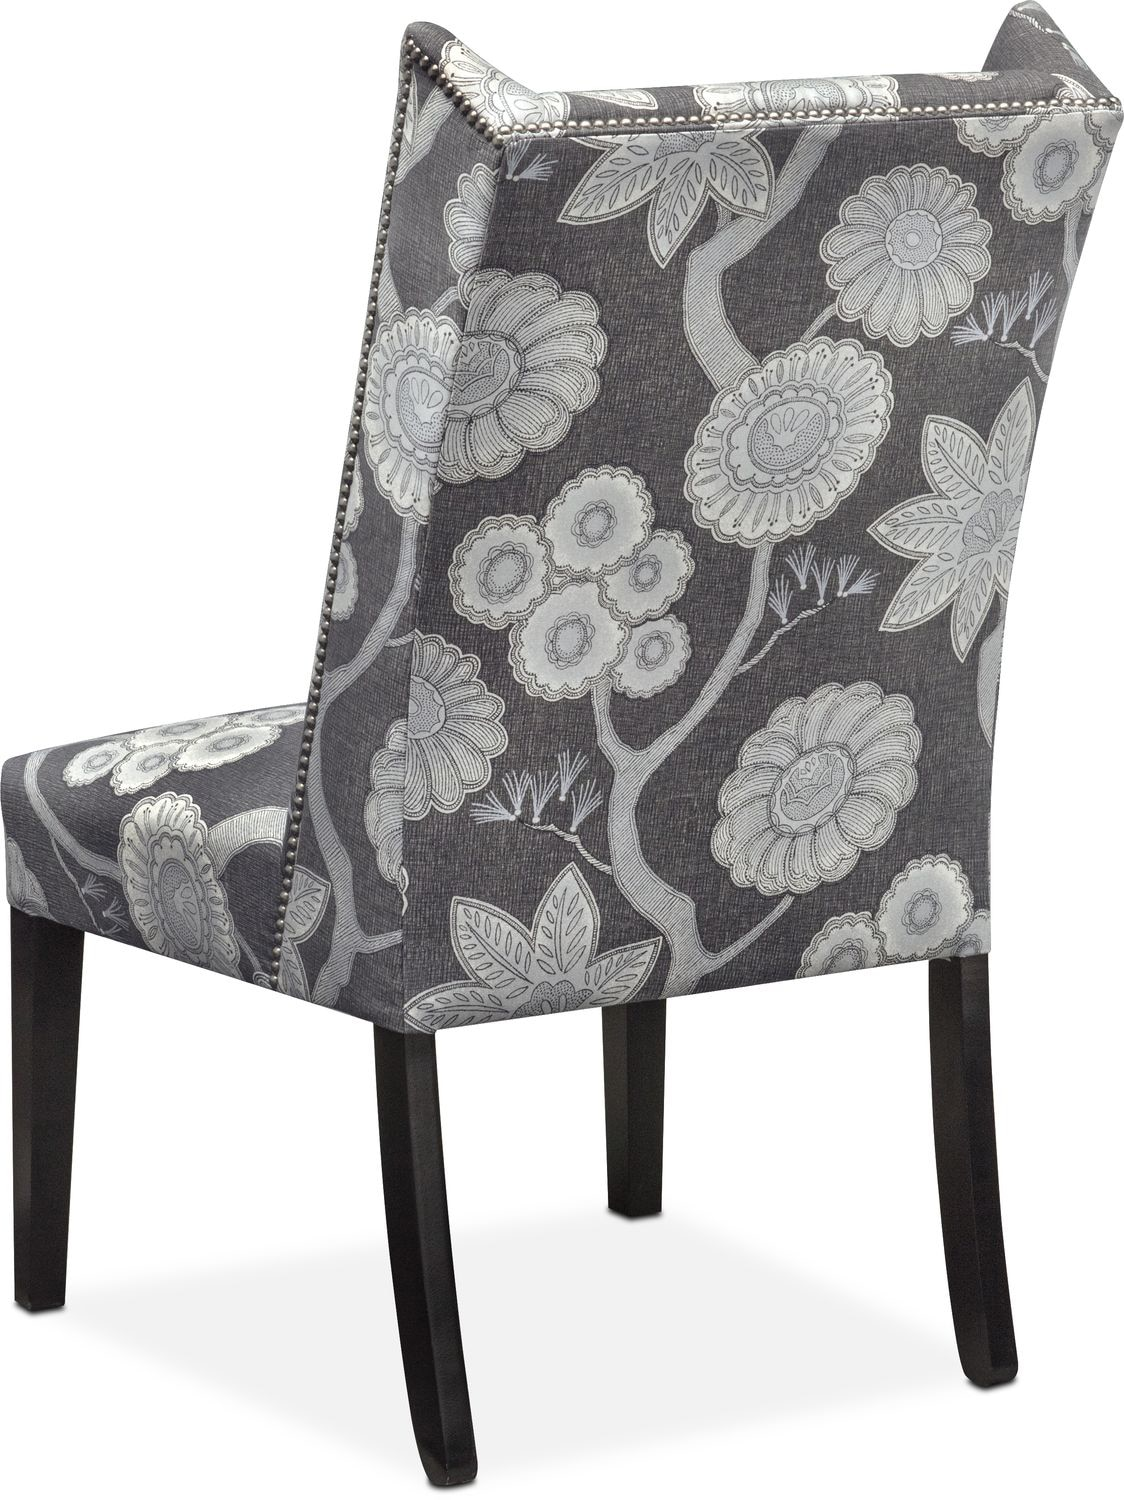 Floral Chairs Whitley Side Chair Floral Onyx Value City Furniture